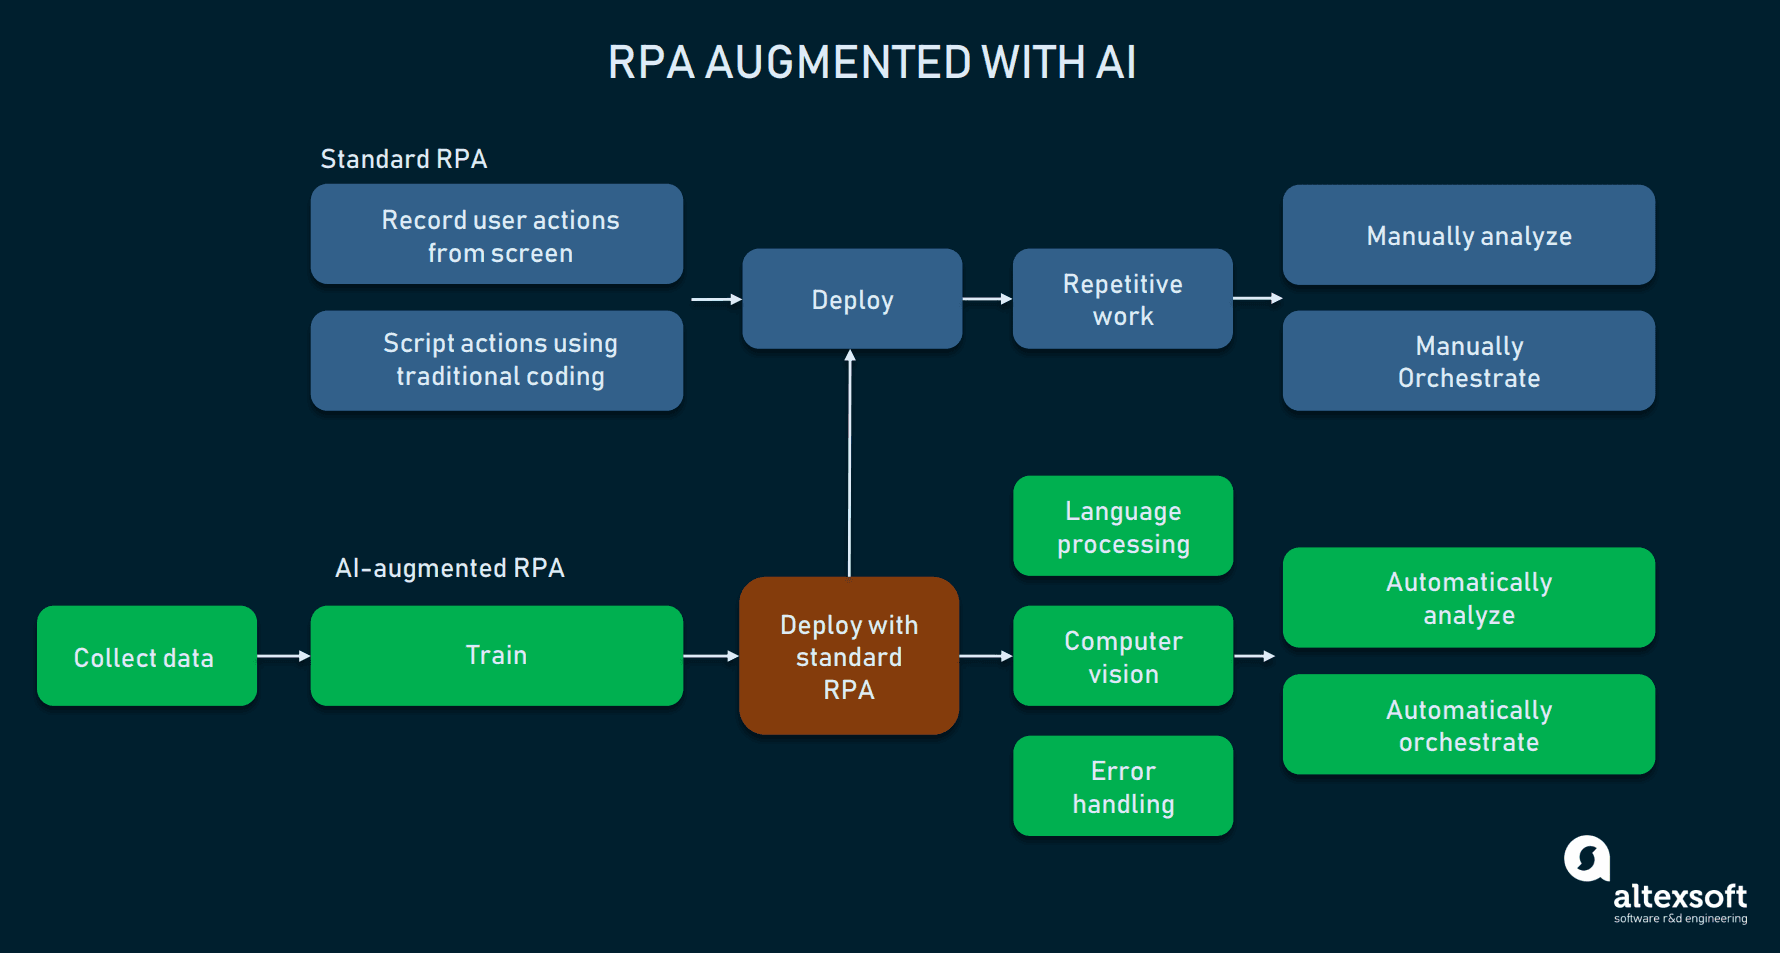 Standard RPA implementation can be augmented with additional AI-driven capabilities